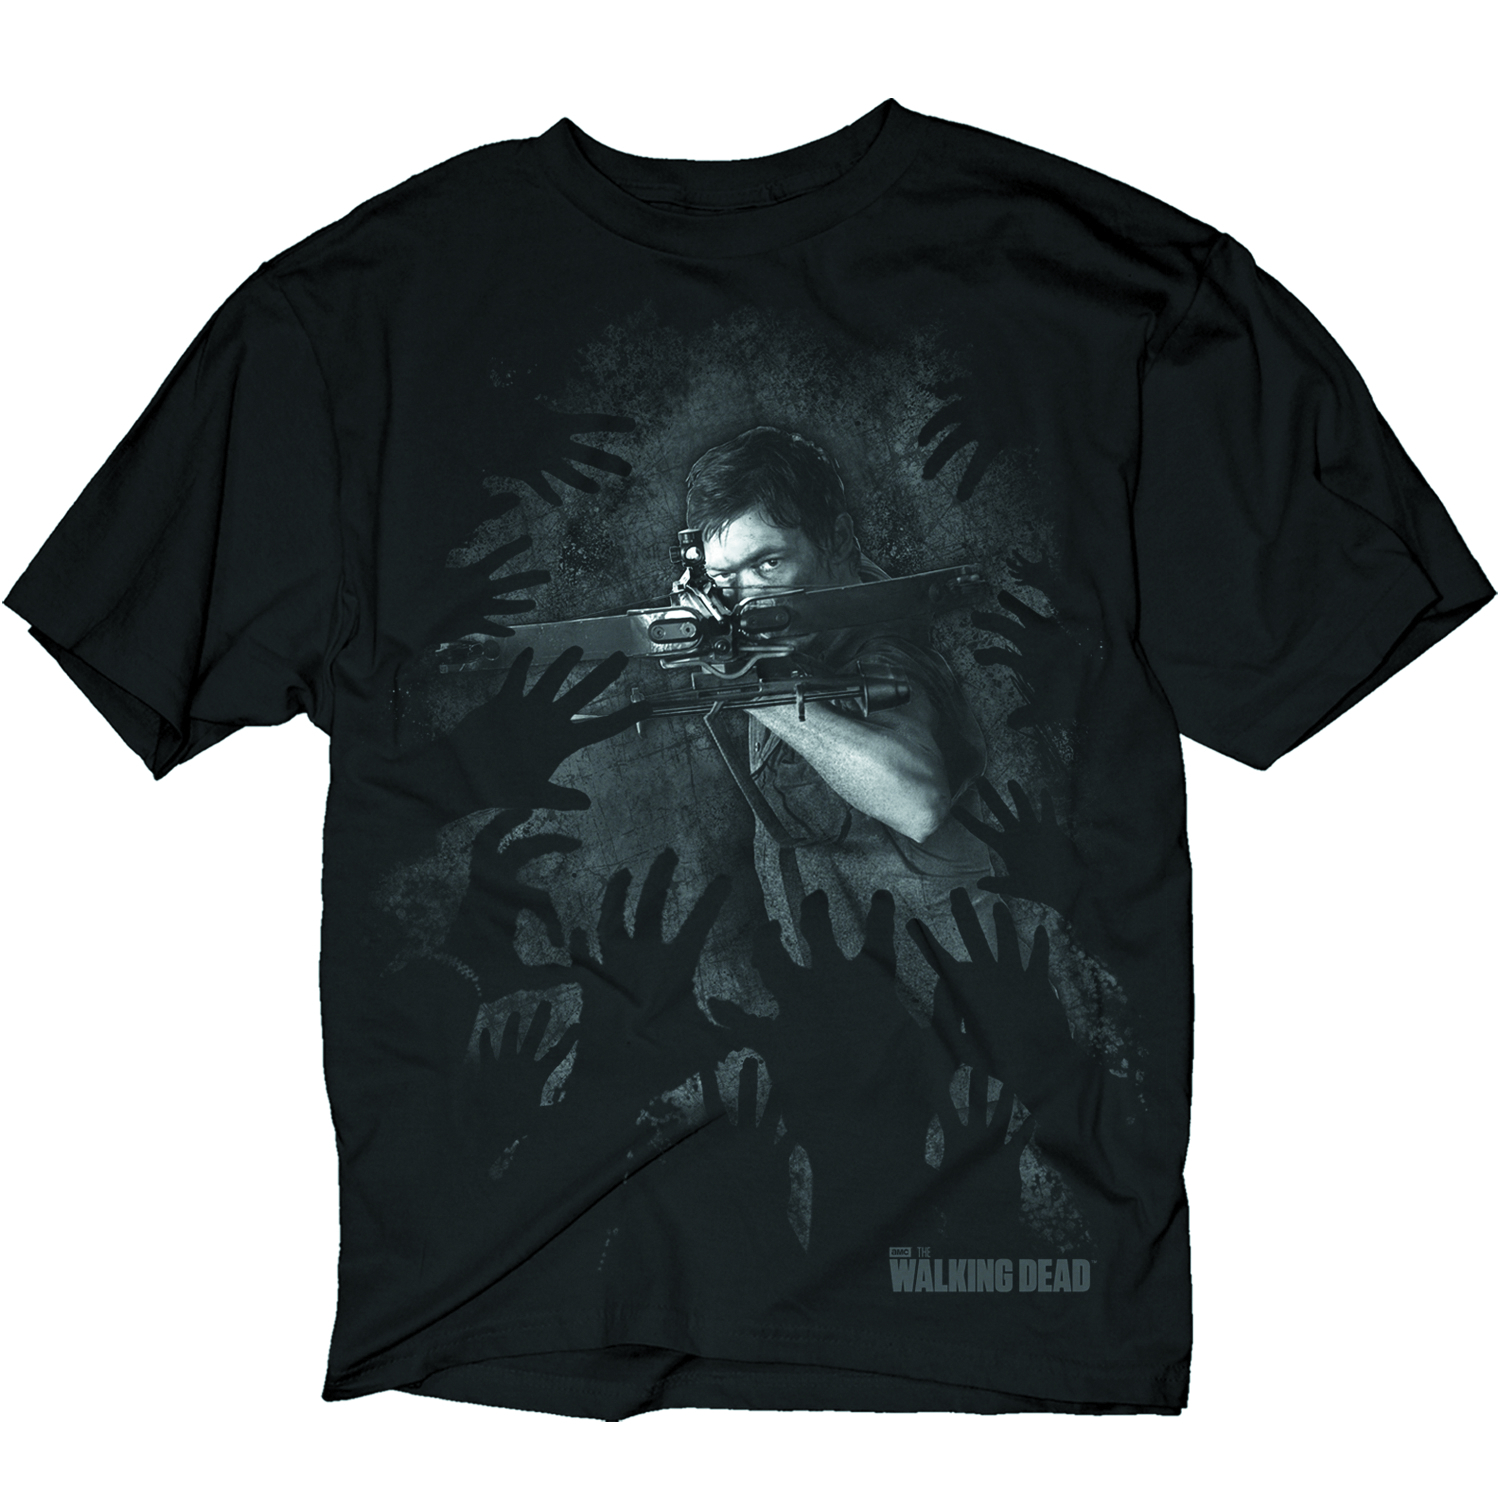 WALKING DEAD DARYL HANDS PX BLK T/S MED